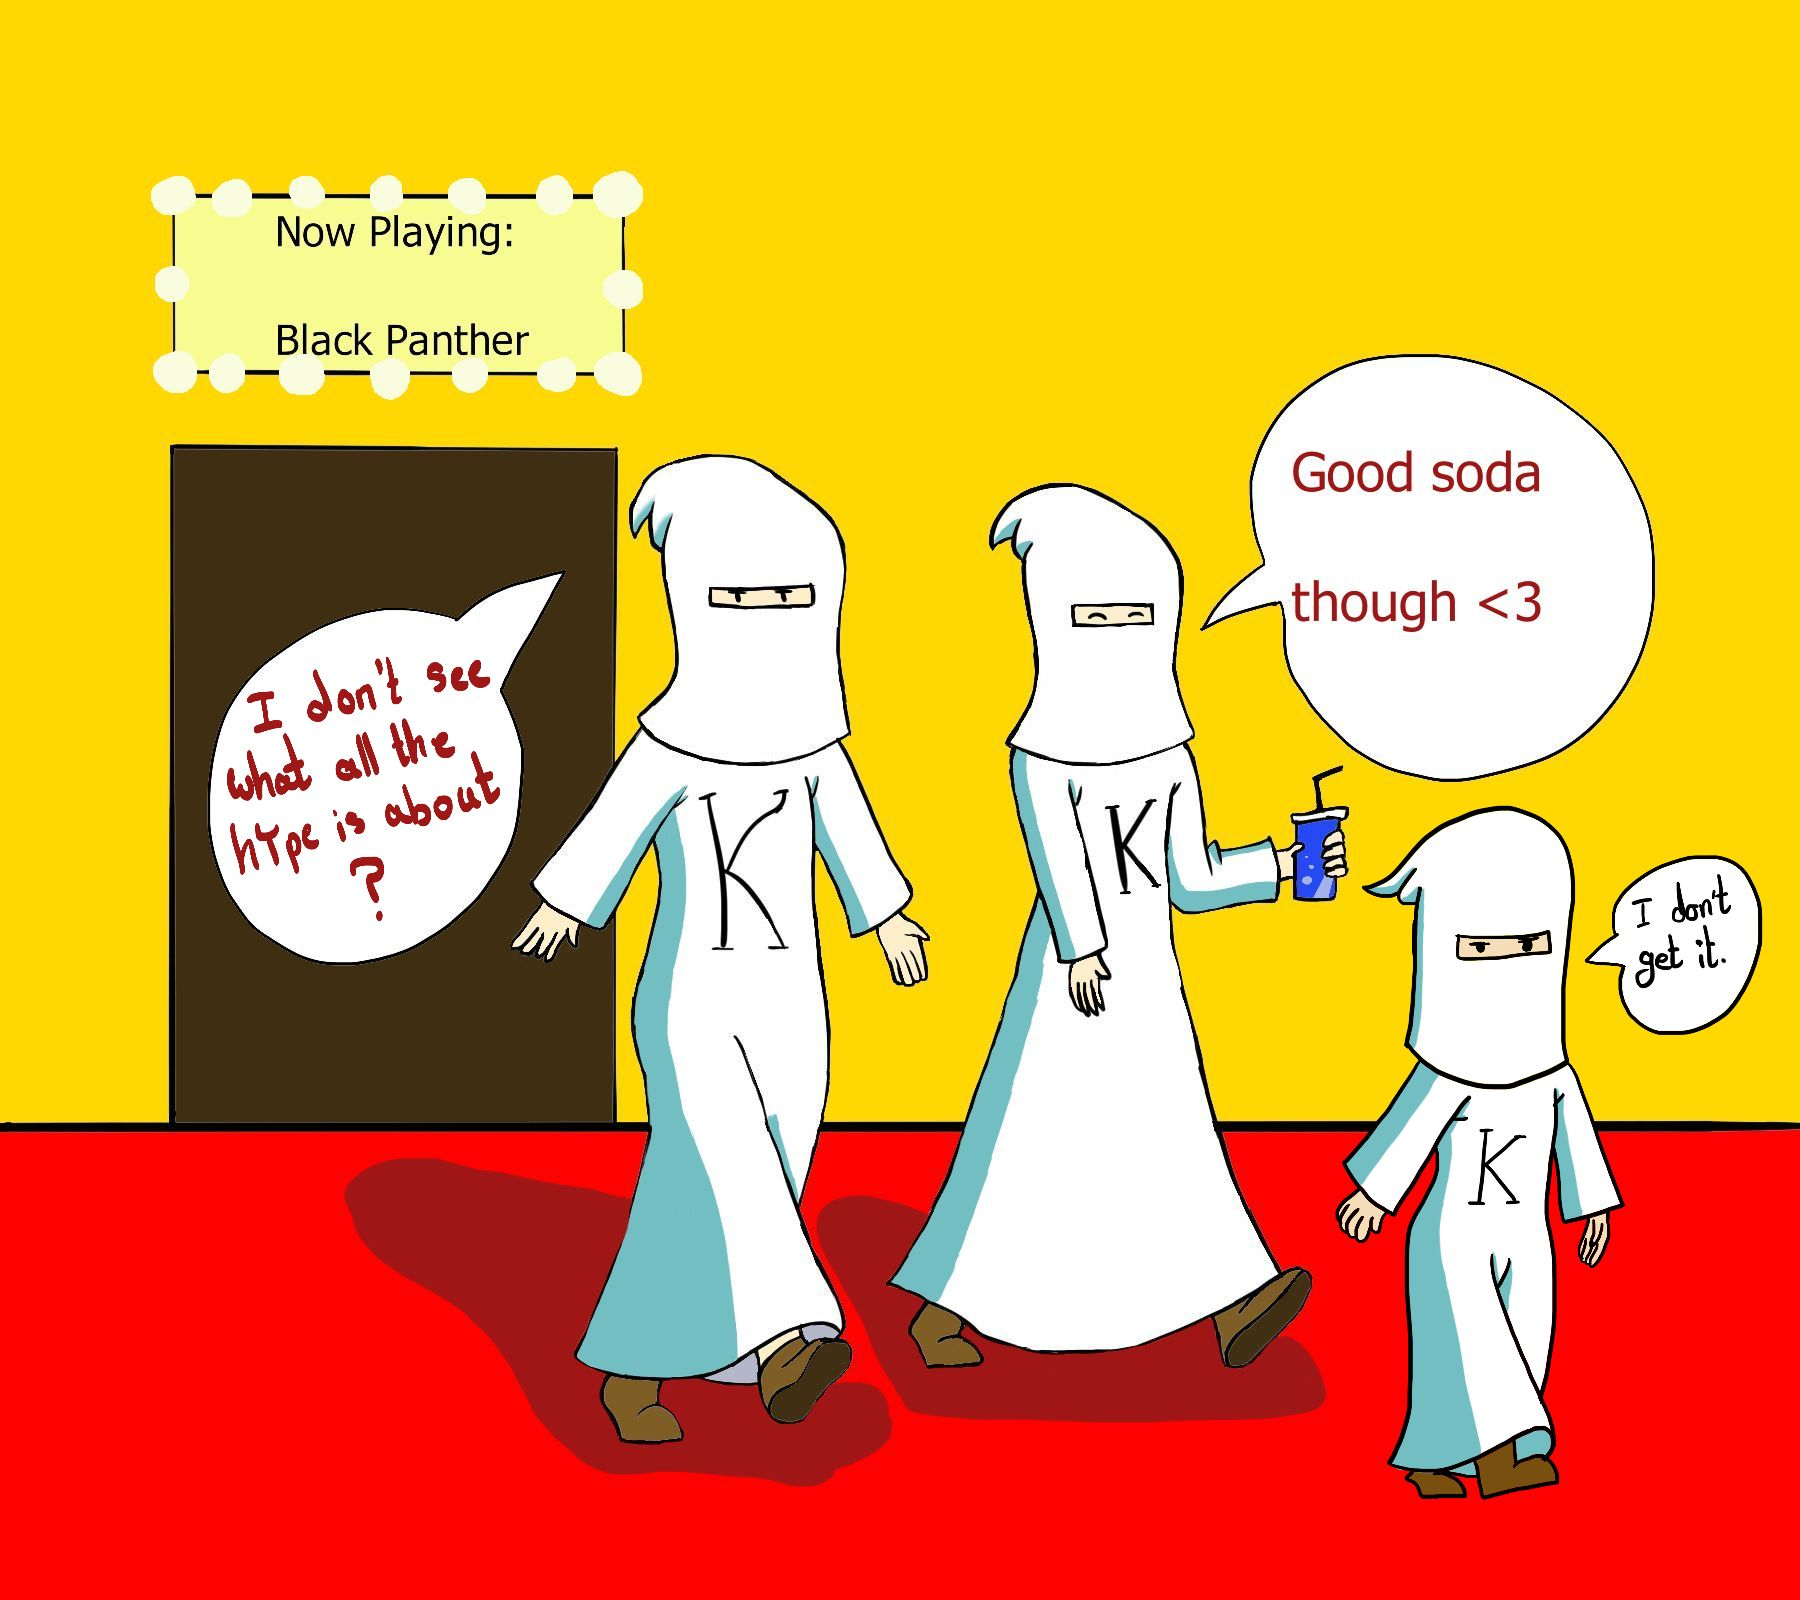 Comic of a family of three in KKK robes and hoods coming out of the theater having just seen Black Panther and saying they don't know what the hype is about.